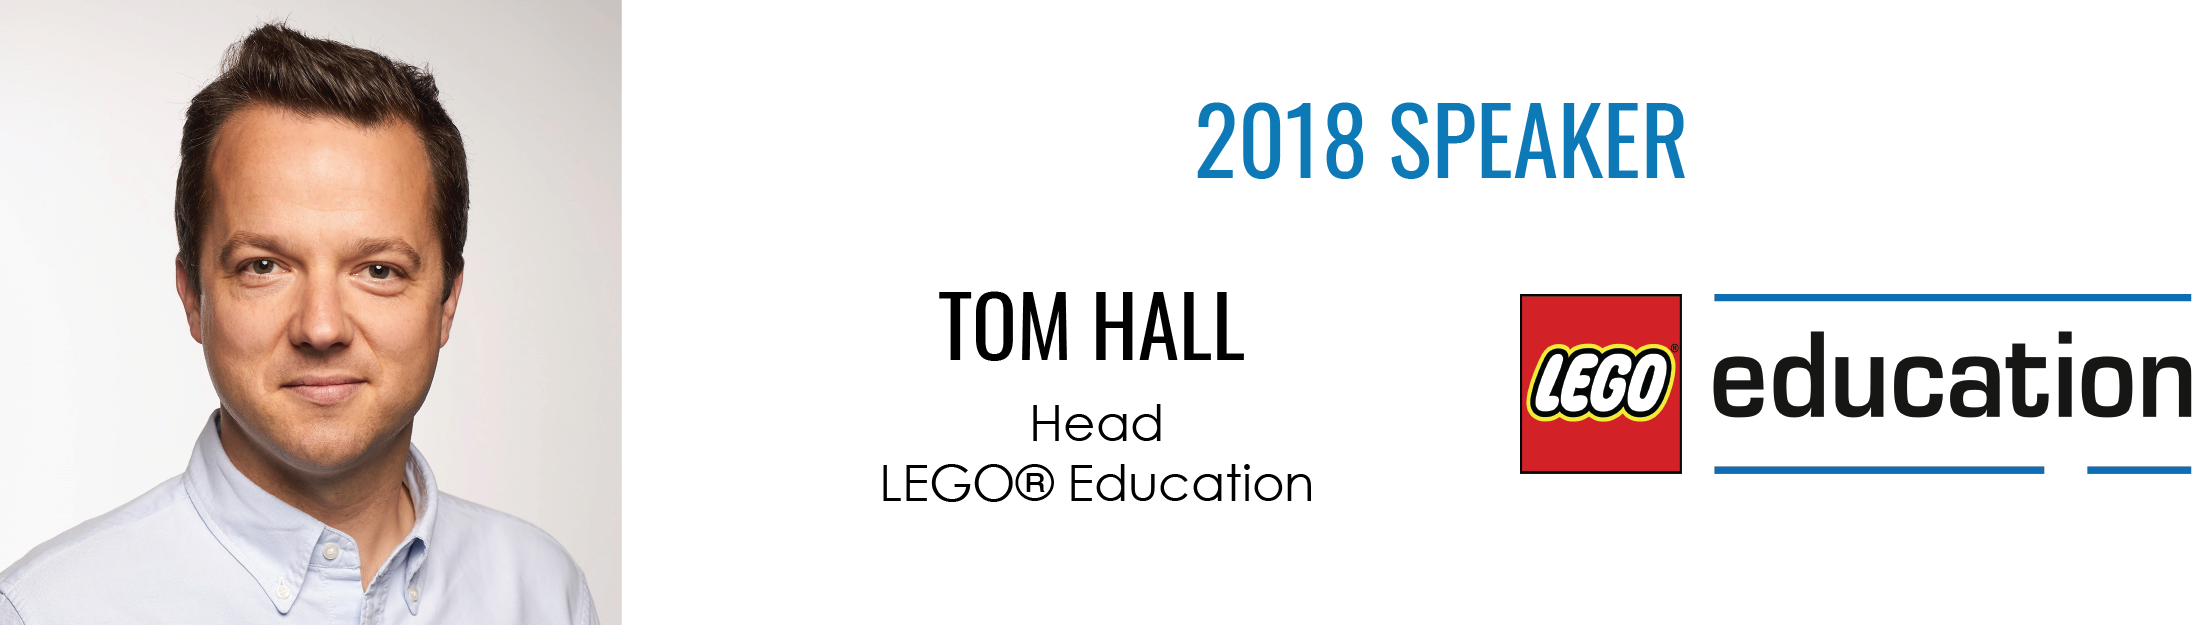 LEGO Education - Tom Hall